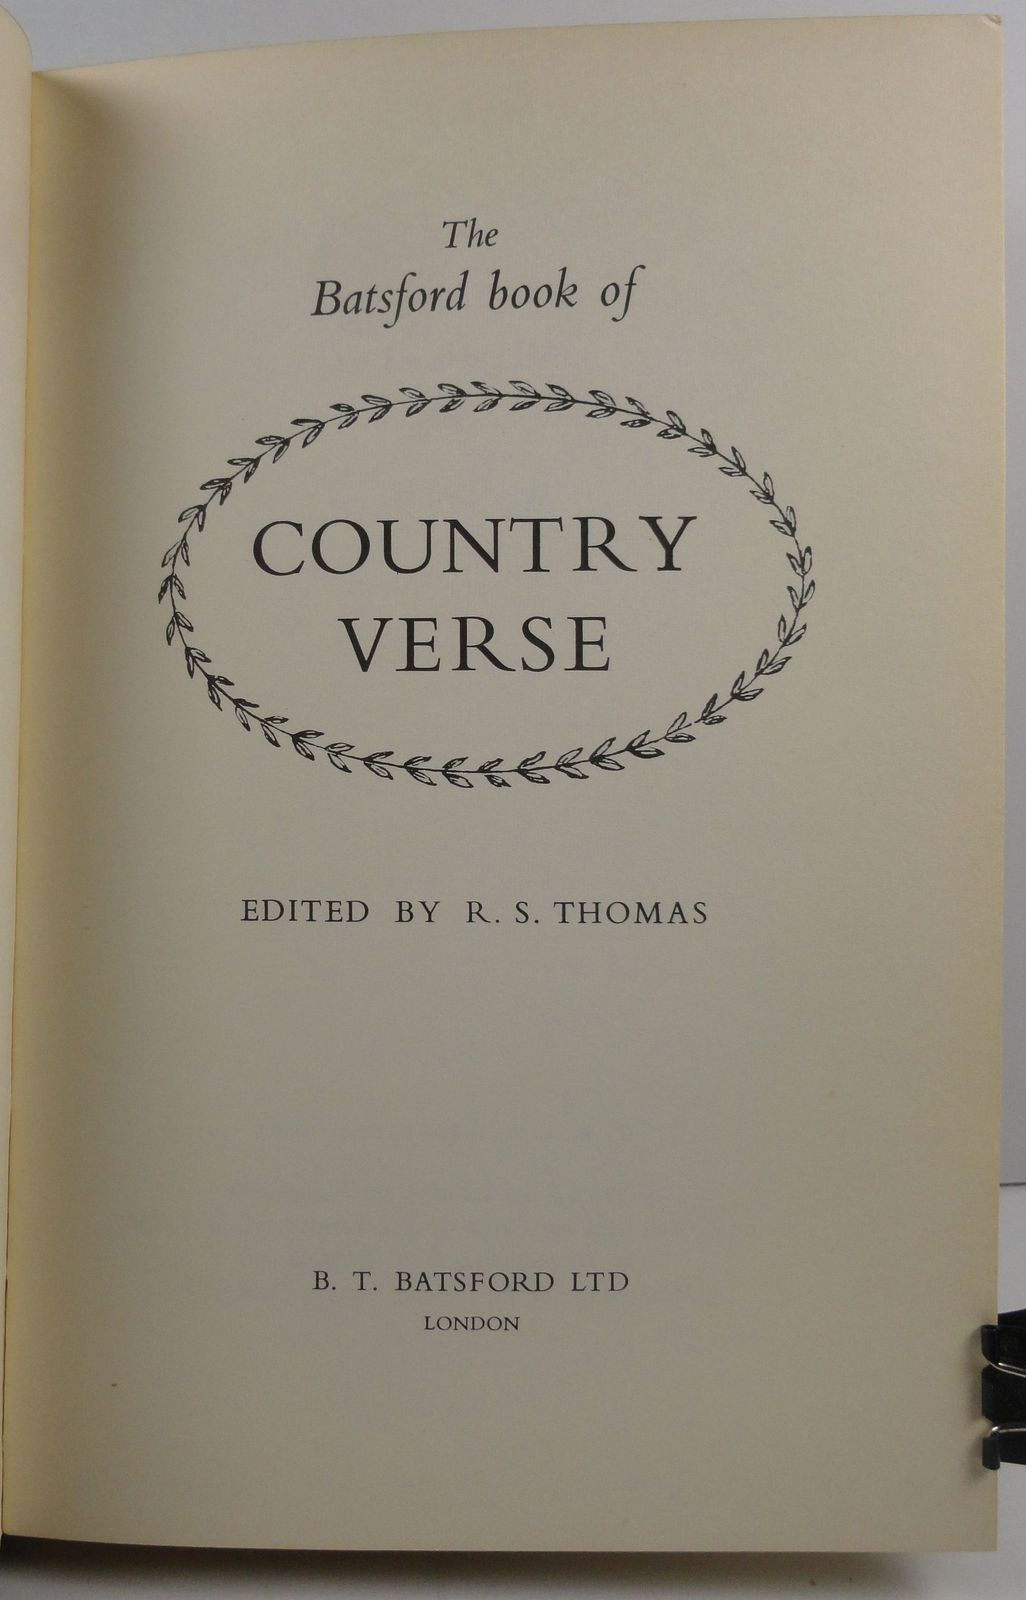 The Batsford Book of Country Verse edited by R.S. Thomas